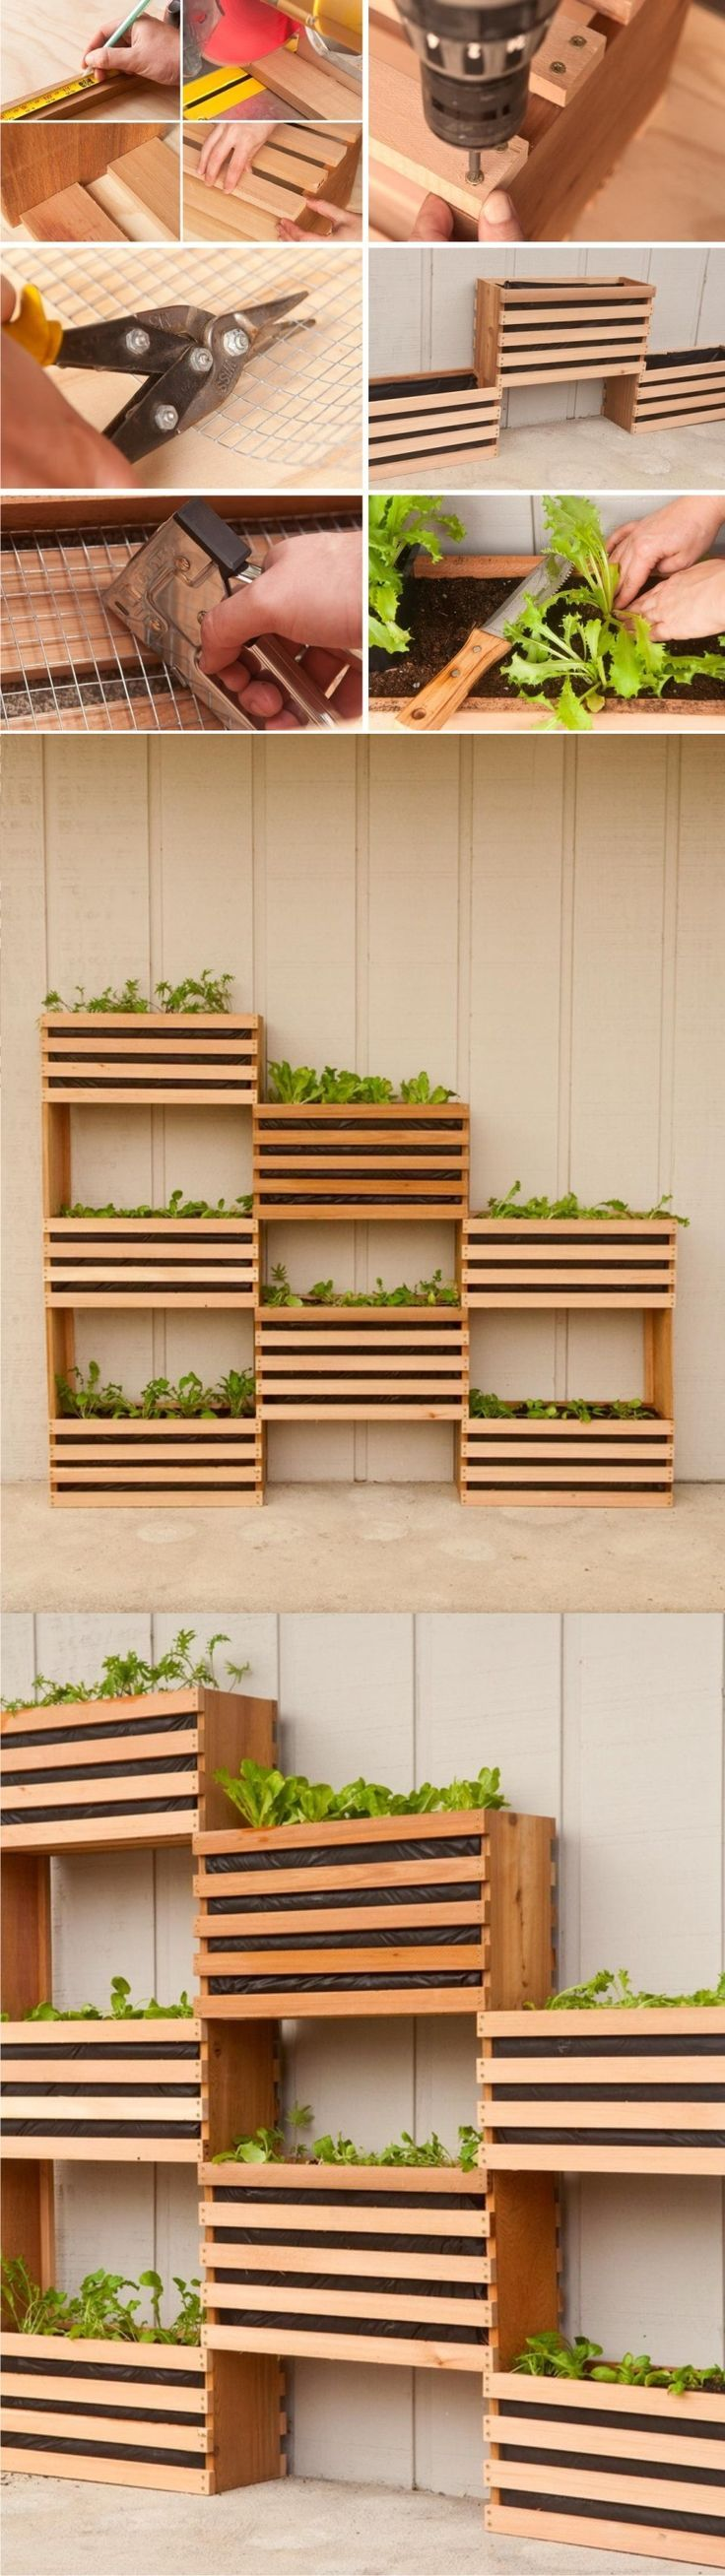 9e0d2f76874e3e25a4bc15cb57dd3e20--vertical-garden-diy-vertical-vegetable-gardens Incroyable De Brasero De Terrasse